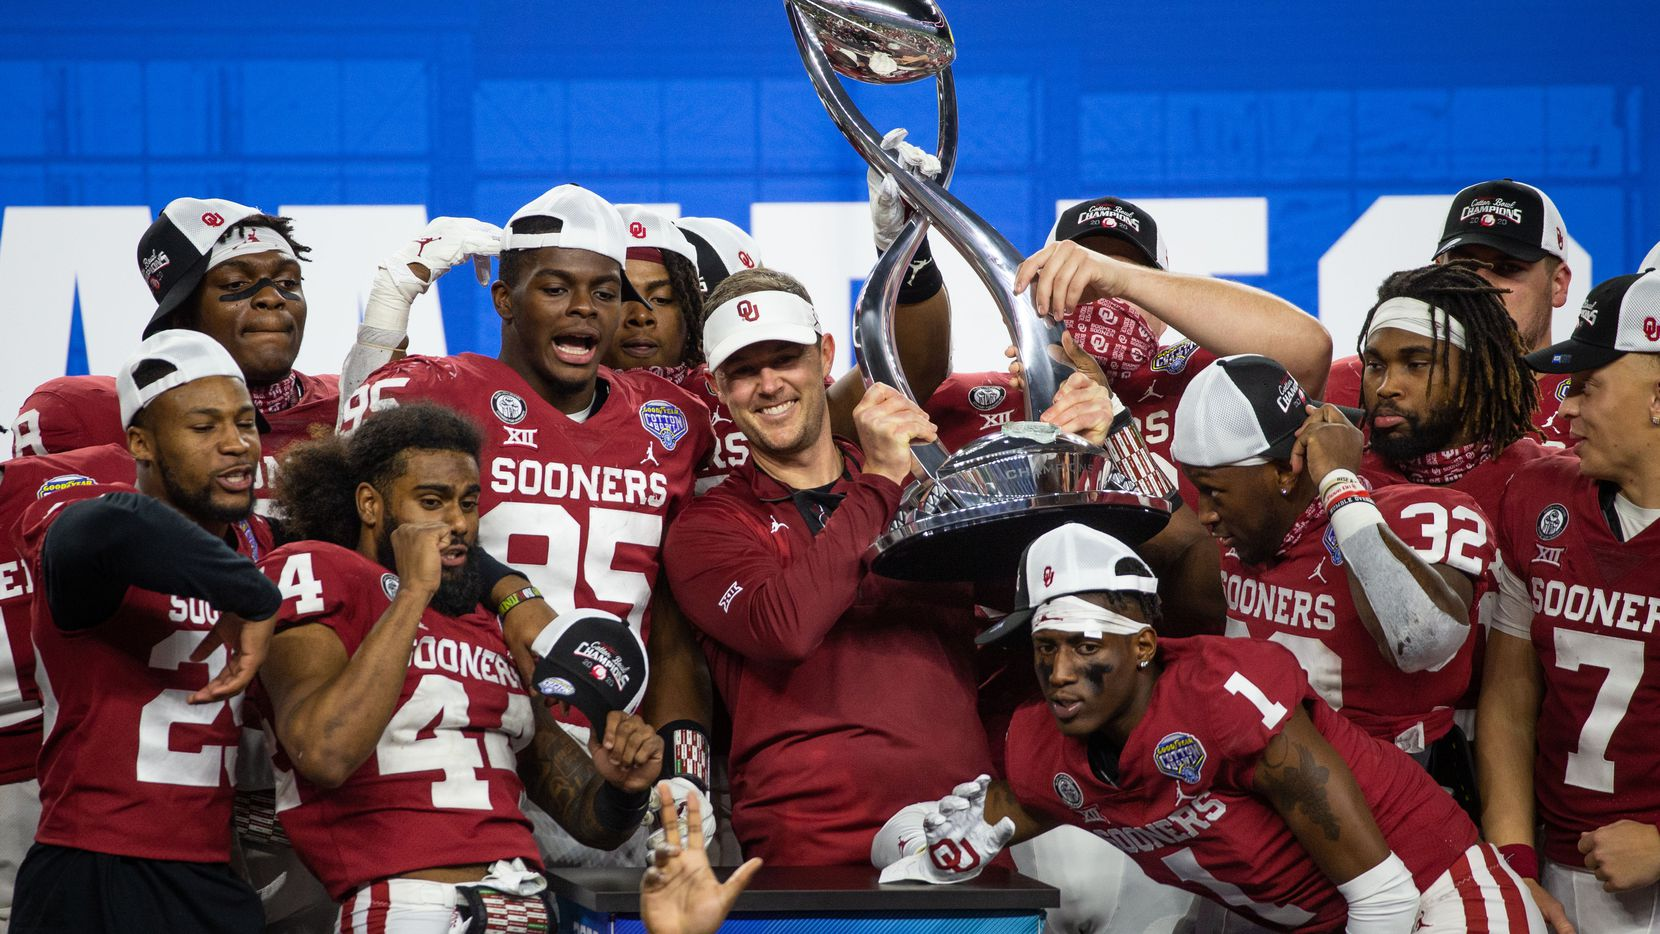 Oklahoma head coach Lincoln Riley holds up the Cotton Bowl champions' trophy and celebrates with his team following the Cotton Bowl Classic against Florida on Thursday, Dec. 30, 2020.